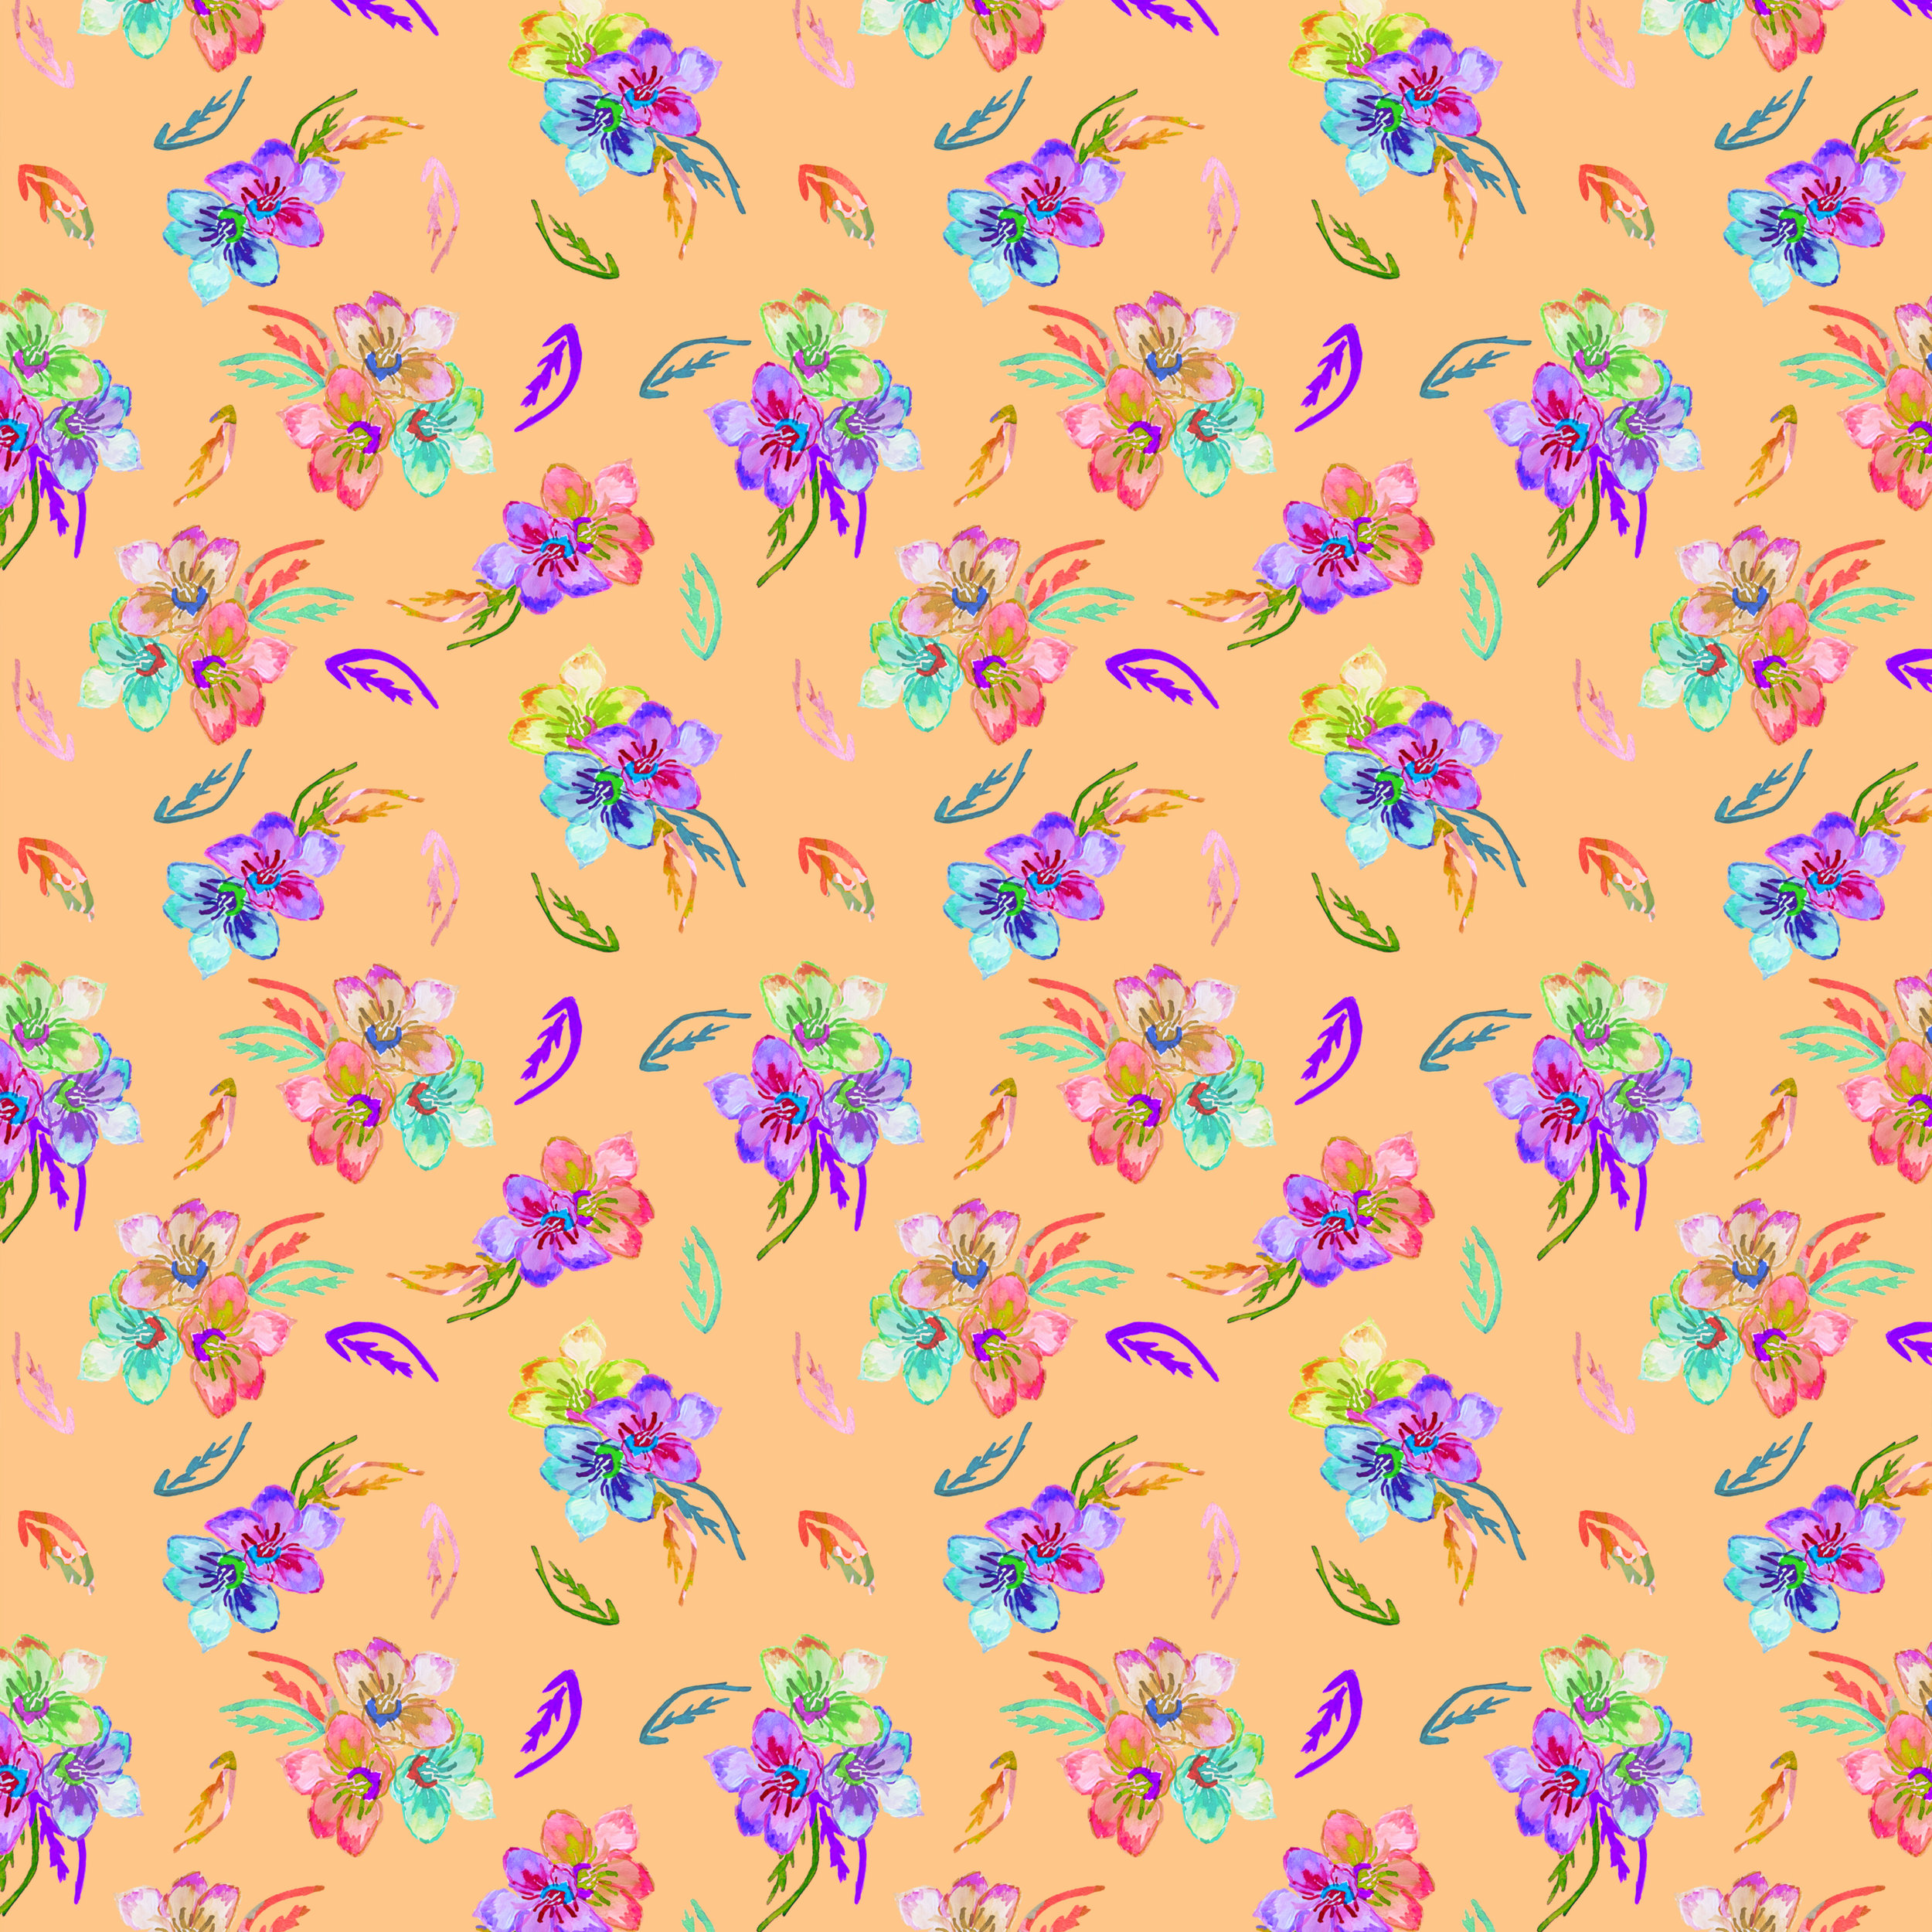 small floral.jpg